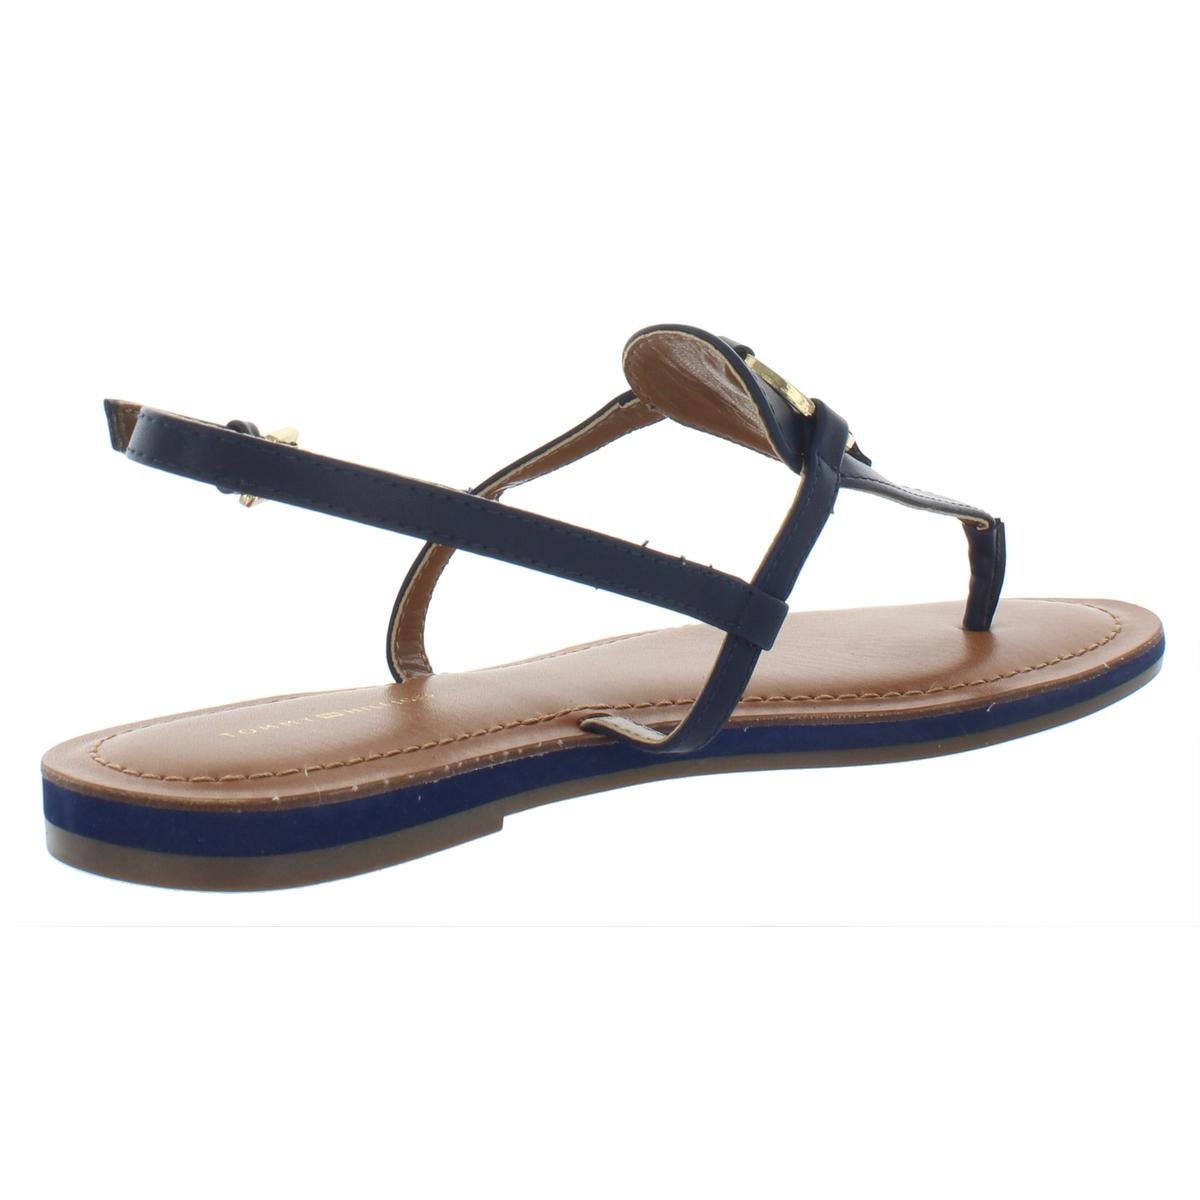 Tommy-Hilfiger-Womens-Genei-Metallic-T-Strap-Thong-Sandals-Shoes-BHFO-7834 thumbnail 8